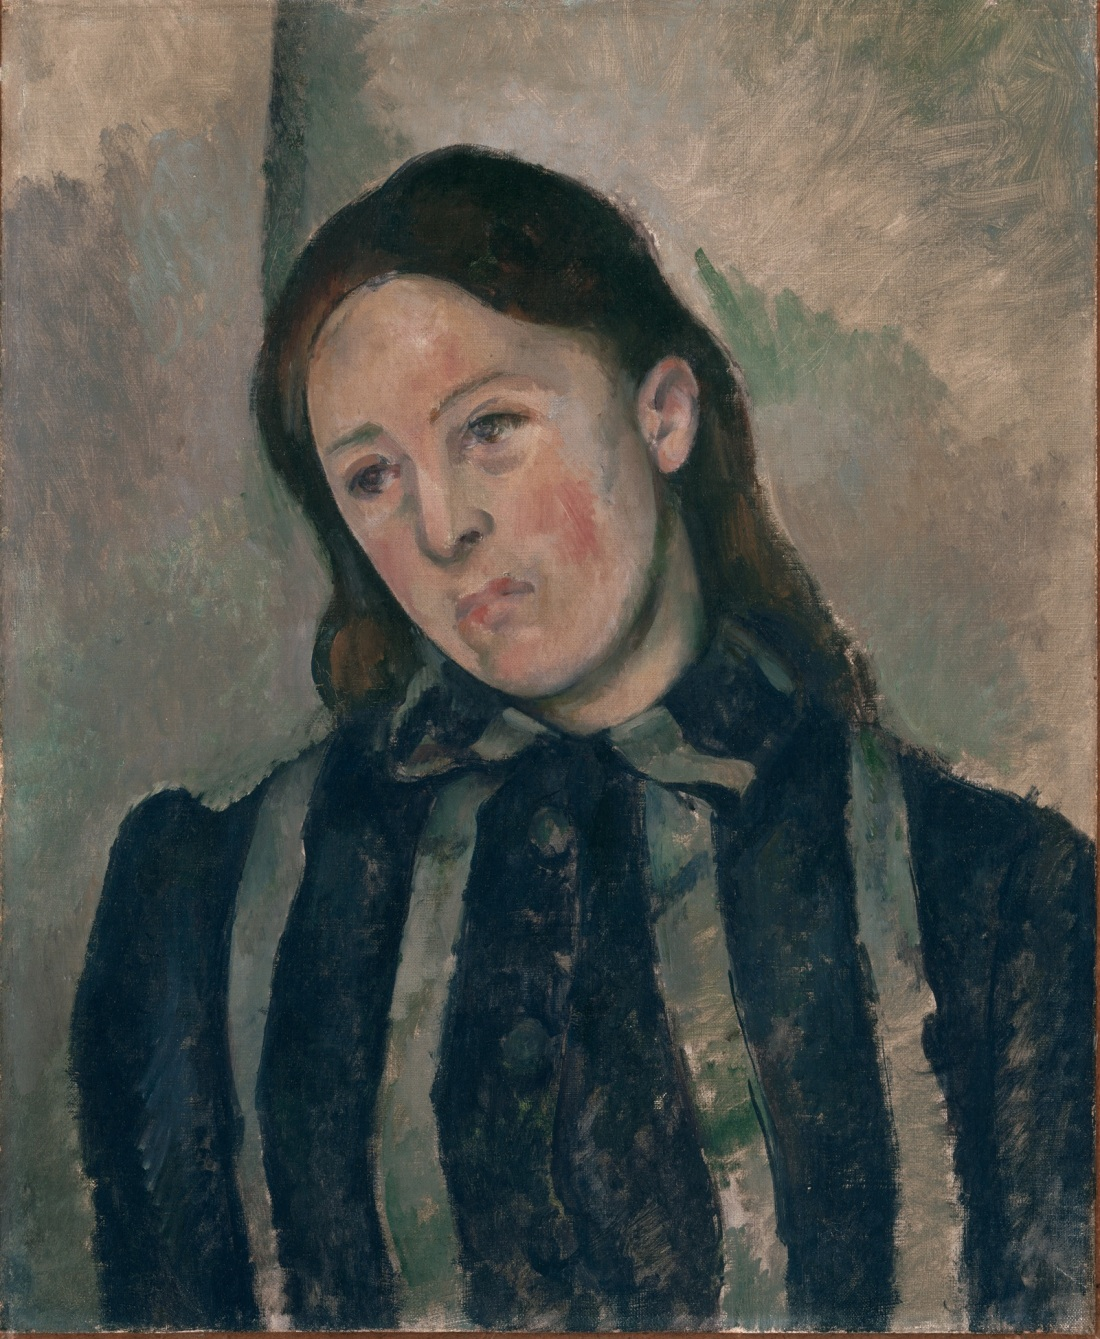 Paul Cezanne, Portrait of Madame Cezanne, 1890-92. Collection of the Philadelphia Museum of Art.